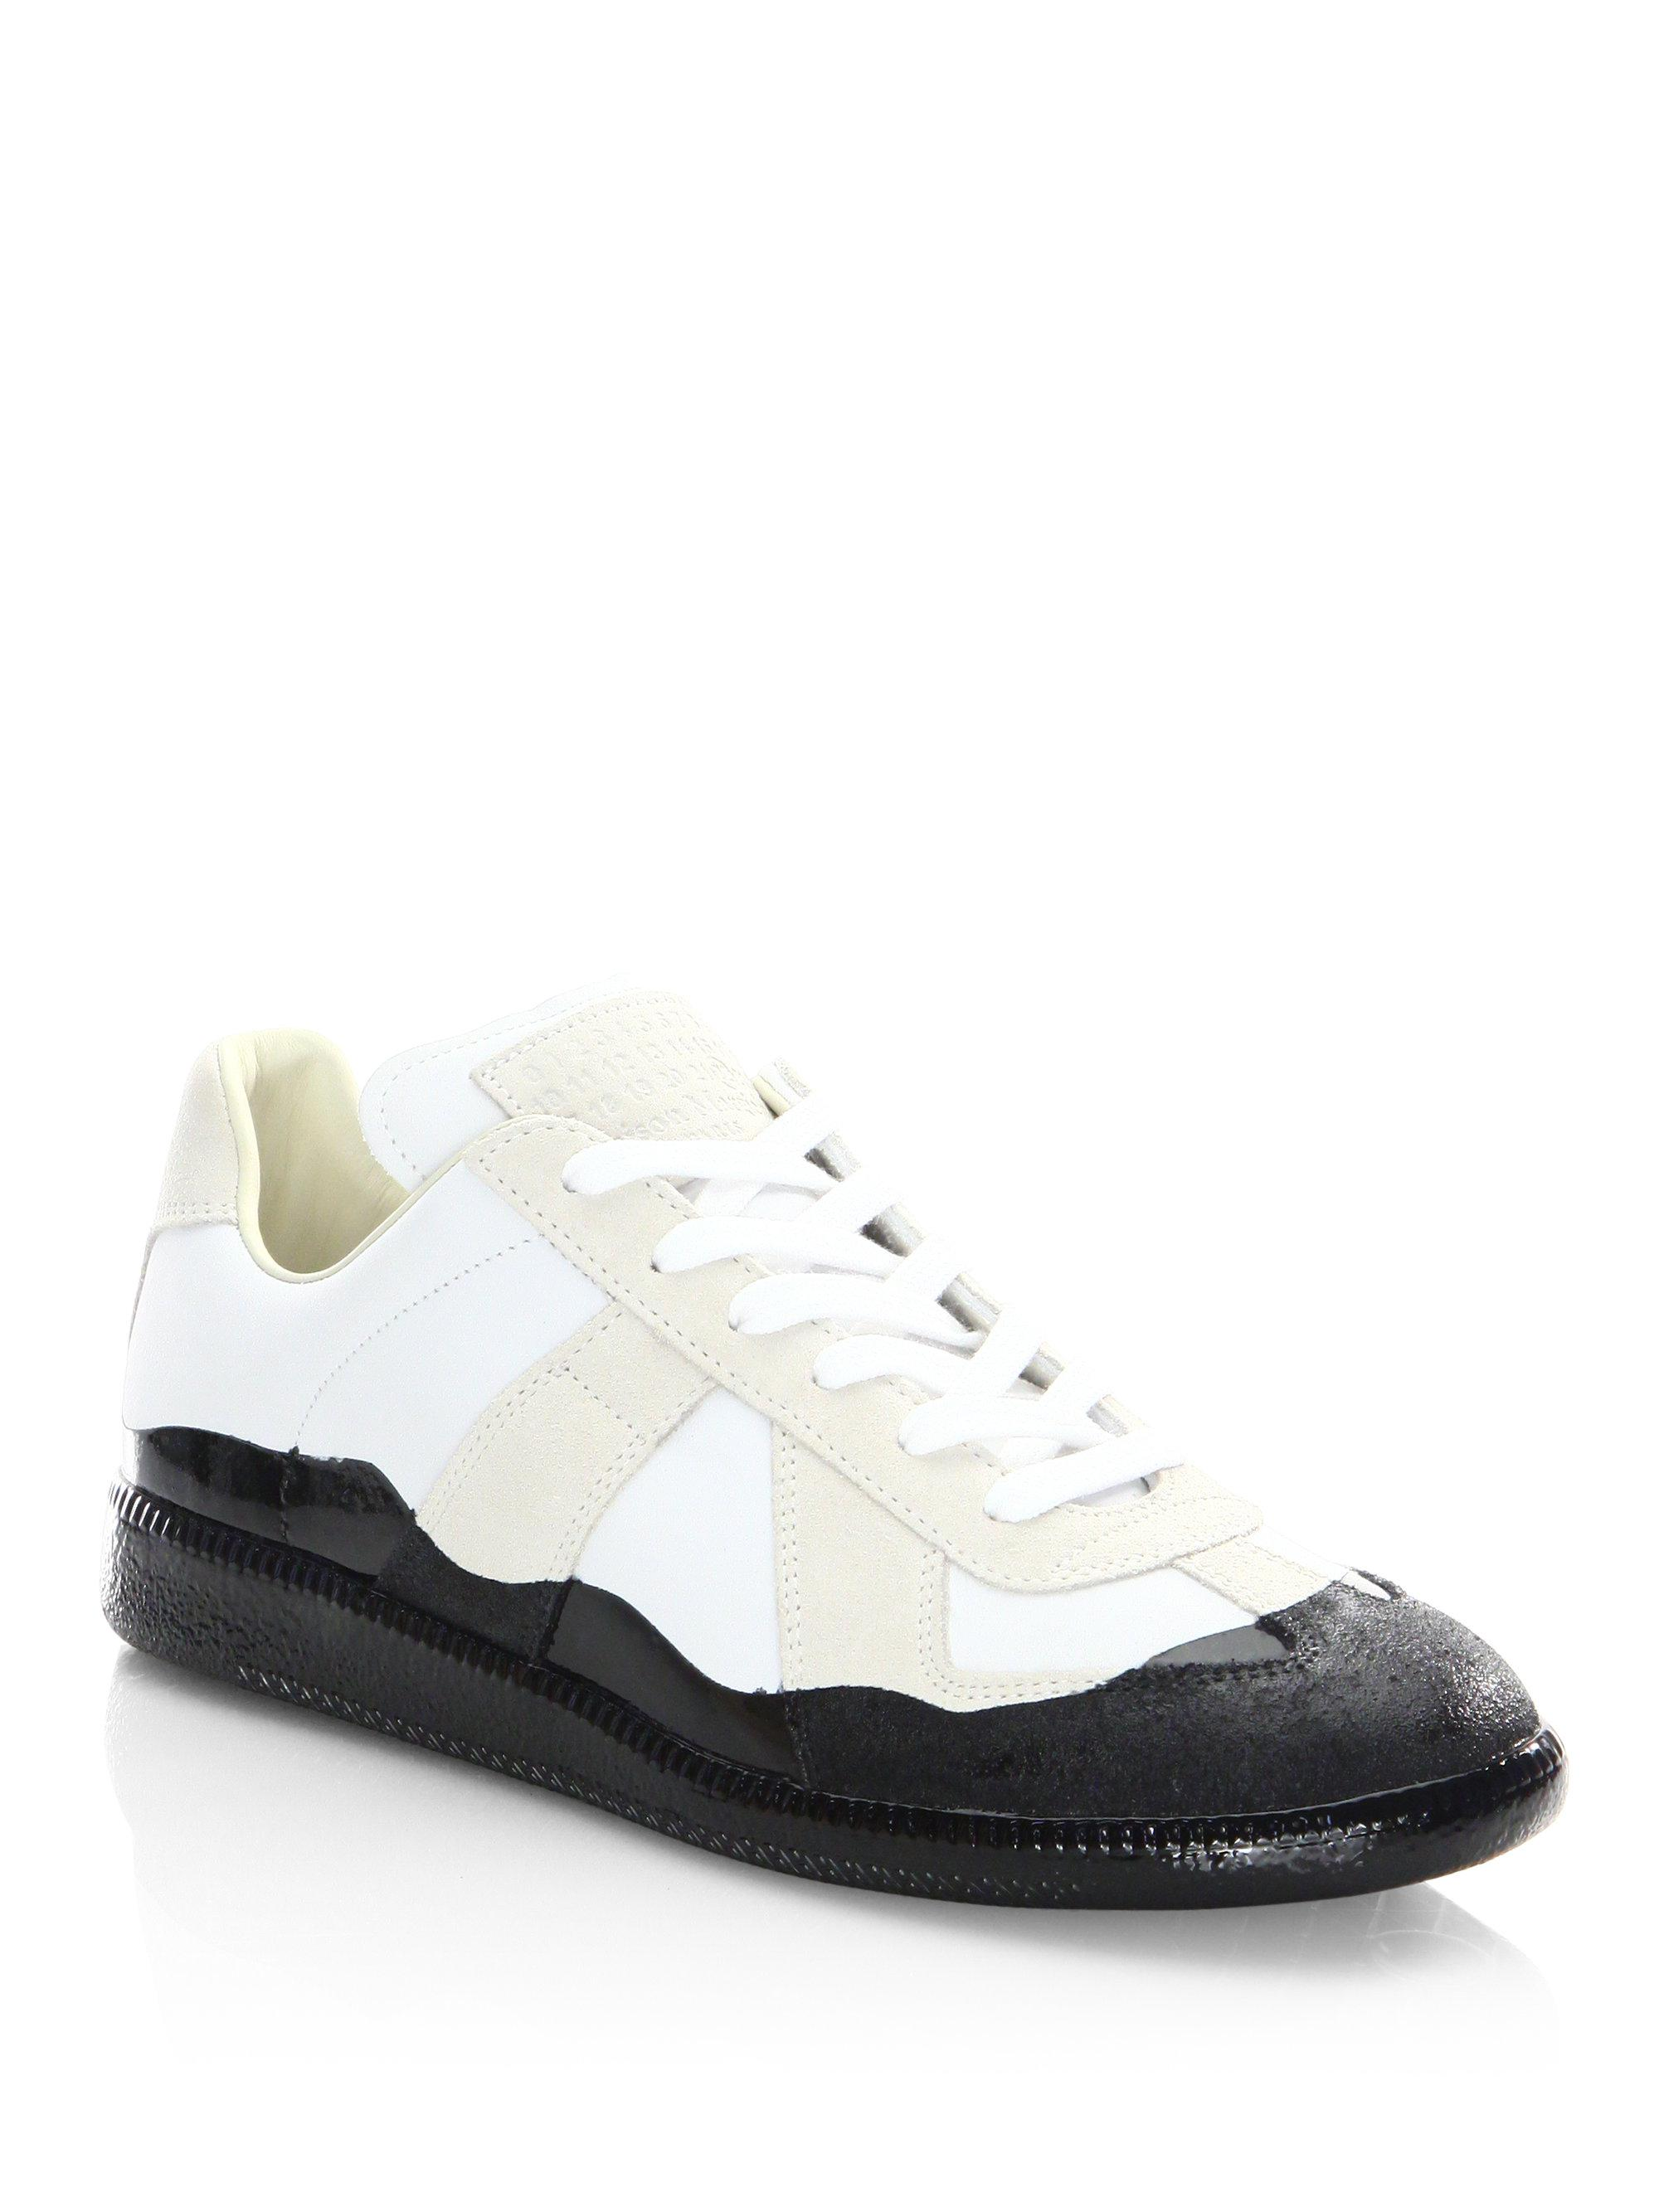 Maison Margiela. Men's White Replica Dipped Low-top Leather Sneakers